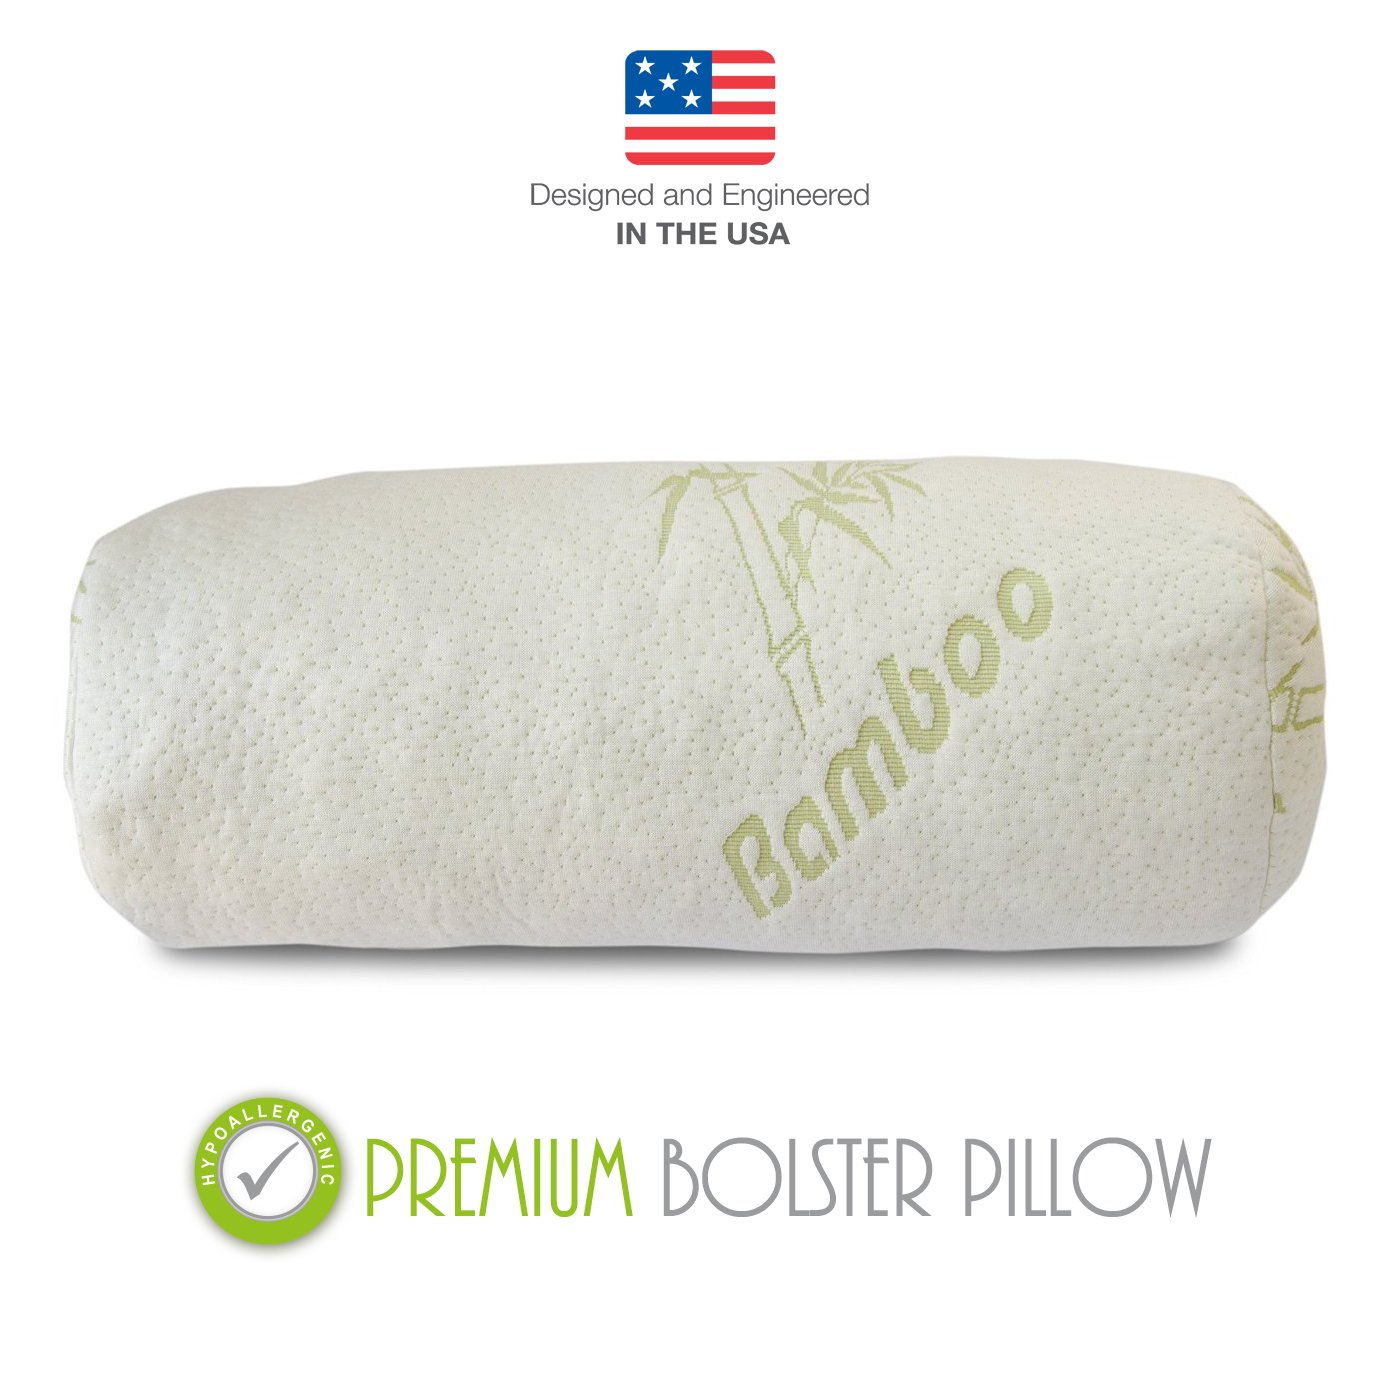 Premium Bamboo Bolster Pillow For Bed - Shredded Memory Foam Pillow Cervical Support For Legs, Round Neck Pillow For Neck Pain, Therapeutic, Orthopedic - Removable Zipper Cover Hypoallergenic Pillow by Premium Bamboo Pillows